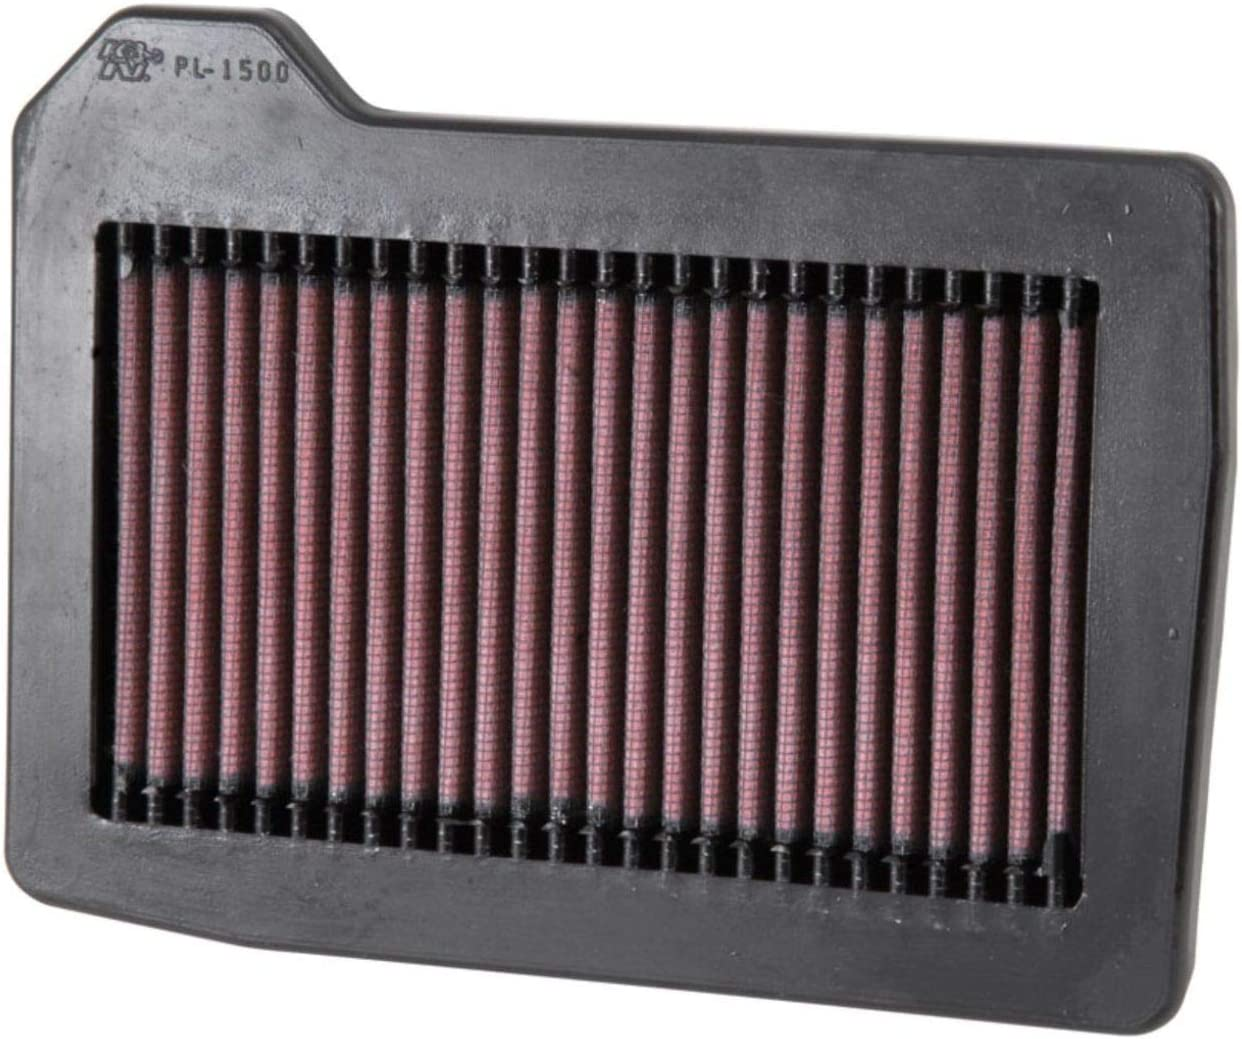 KN Engine Air Filter: High Max 56% OFF Powersport Performance Premium Classic